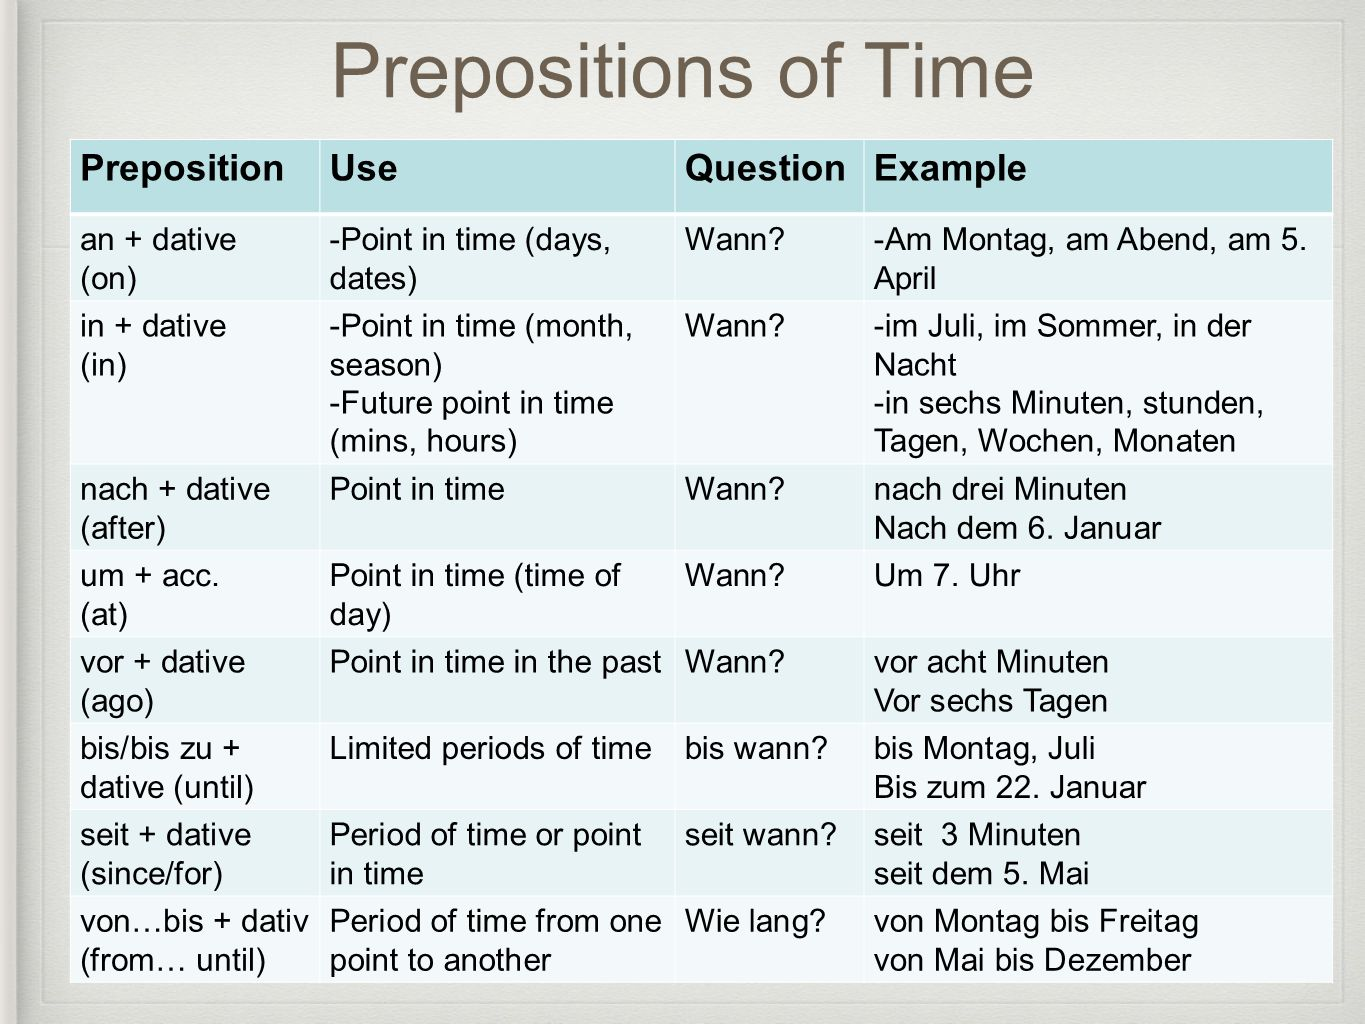 Prepositions of Time PrepositionUseQuestionExample an + dative (on) -Point in time (days, dates) Wann?-Am Montag, am Abend, am 5.